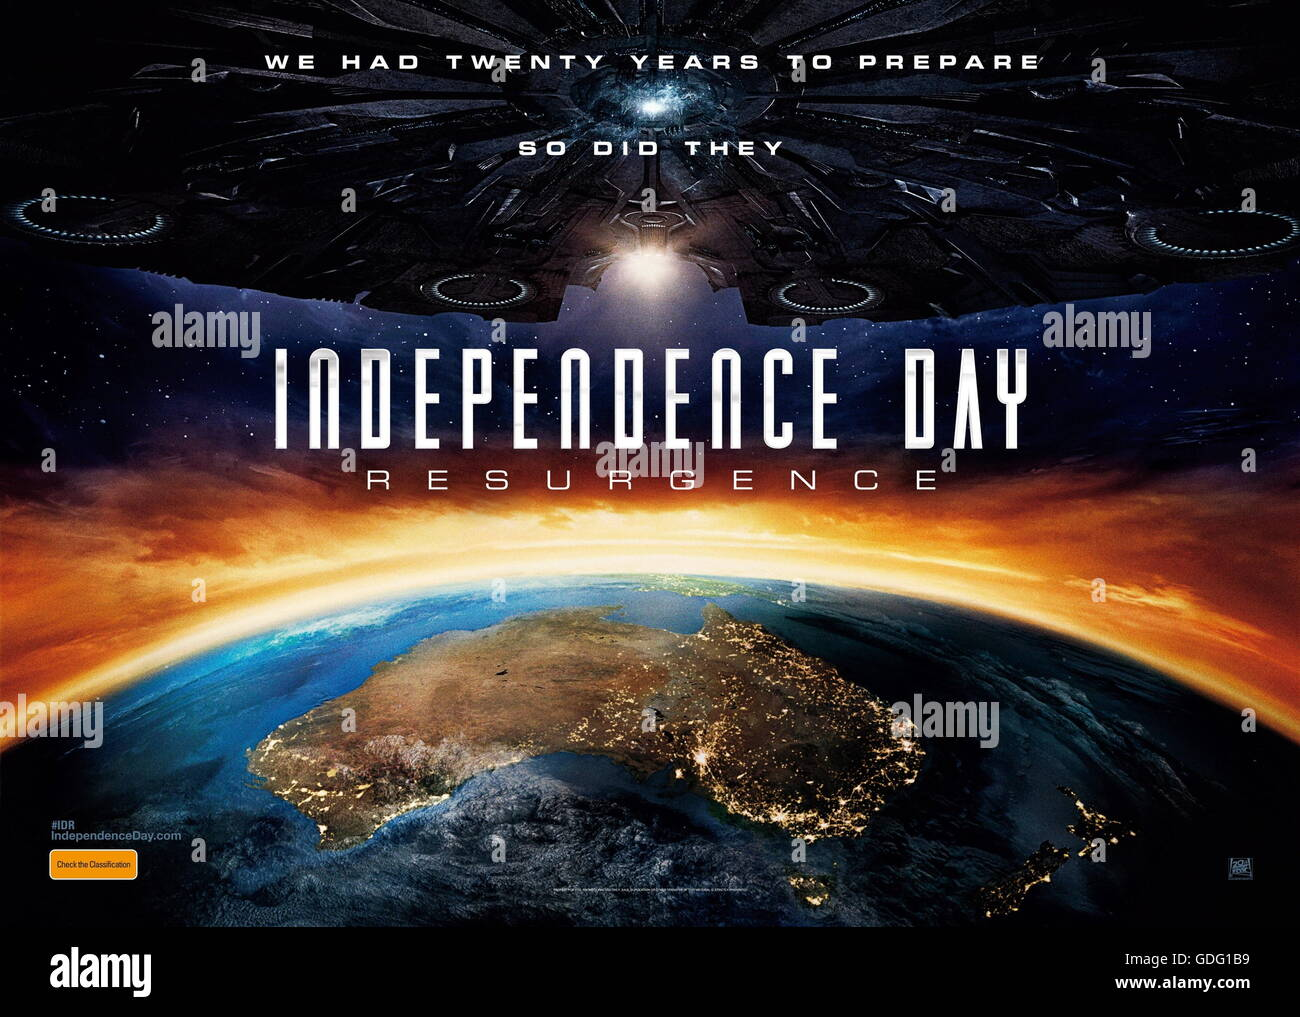 Independence day release date in Melbourne